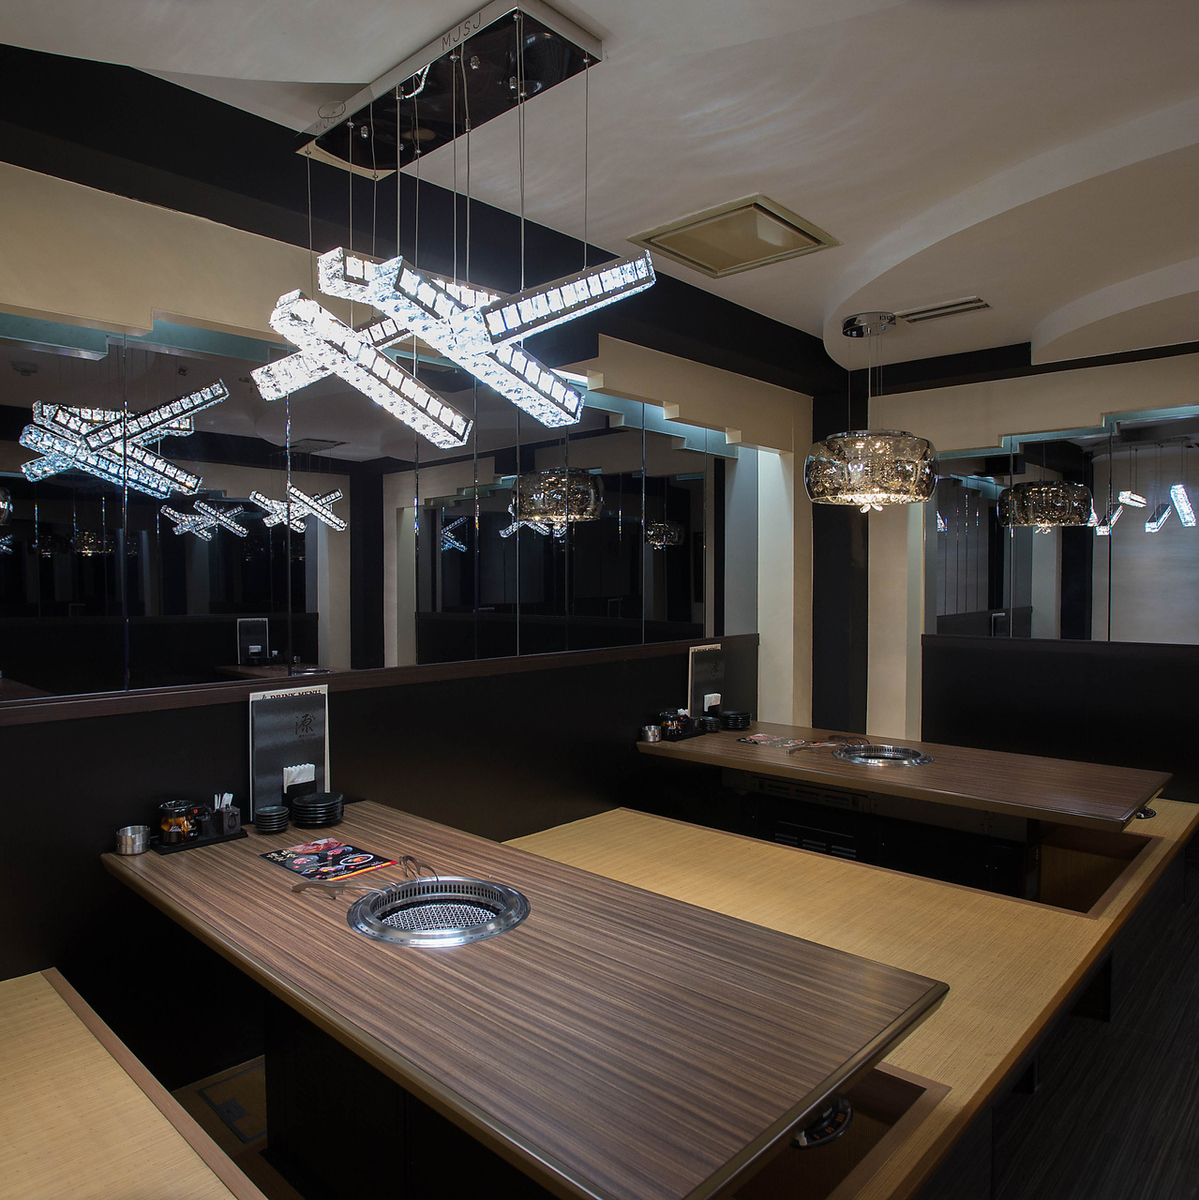 Private room seats for digging can also be guided for 2 people ~ group ♪ You can use it according to various scenes such as weddings second party and parties in a moist mood sticking to light ★ ☆ By floor We would like to invite you to enjoy private room space where atmosphere changes.